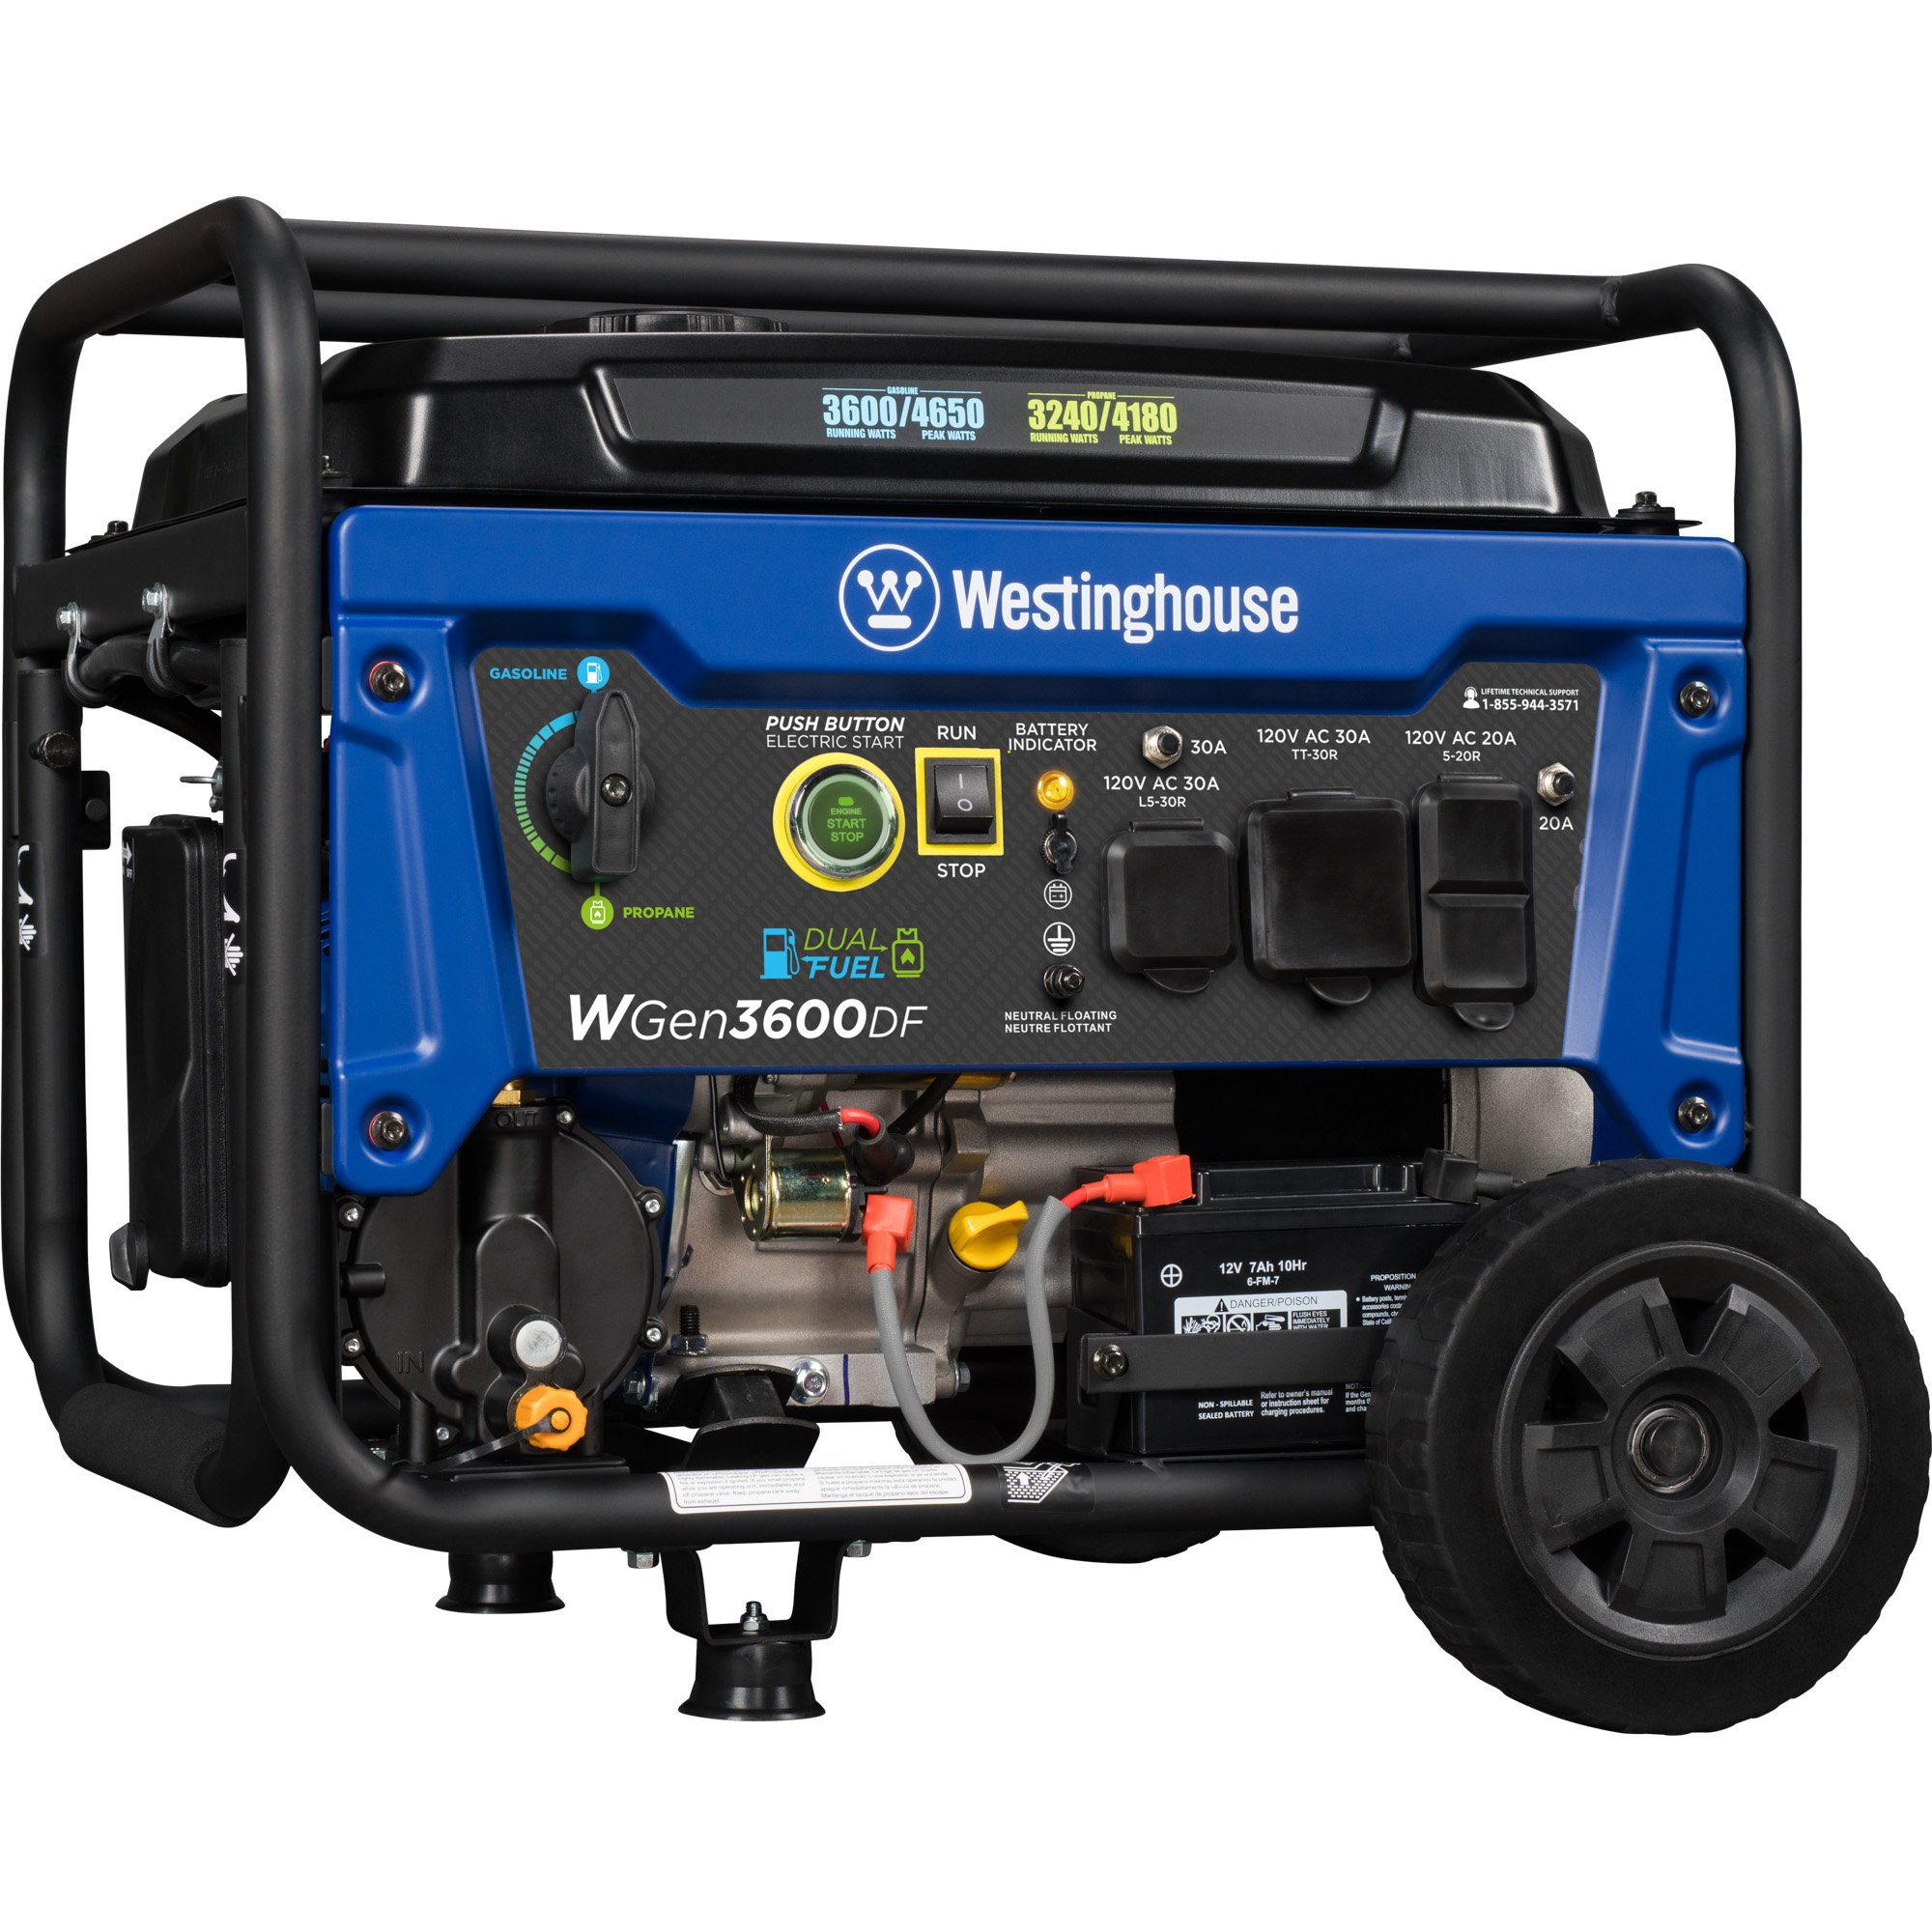 Westinghouse WGen3600DF Dual Fuel Portable Generator product image